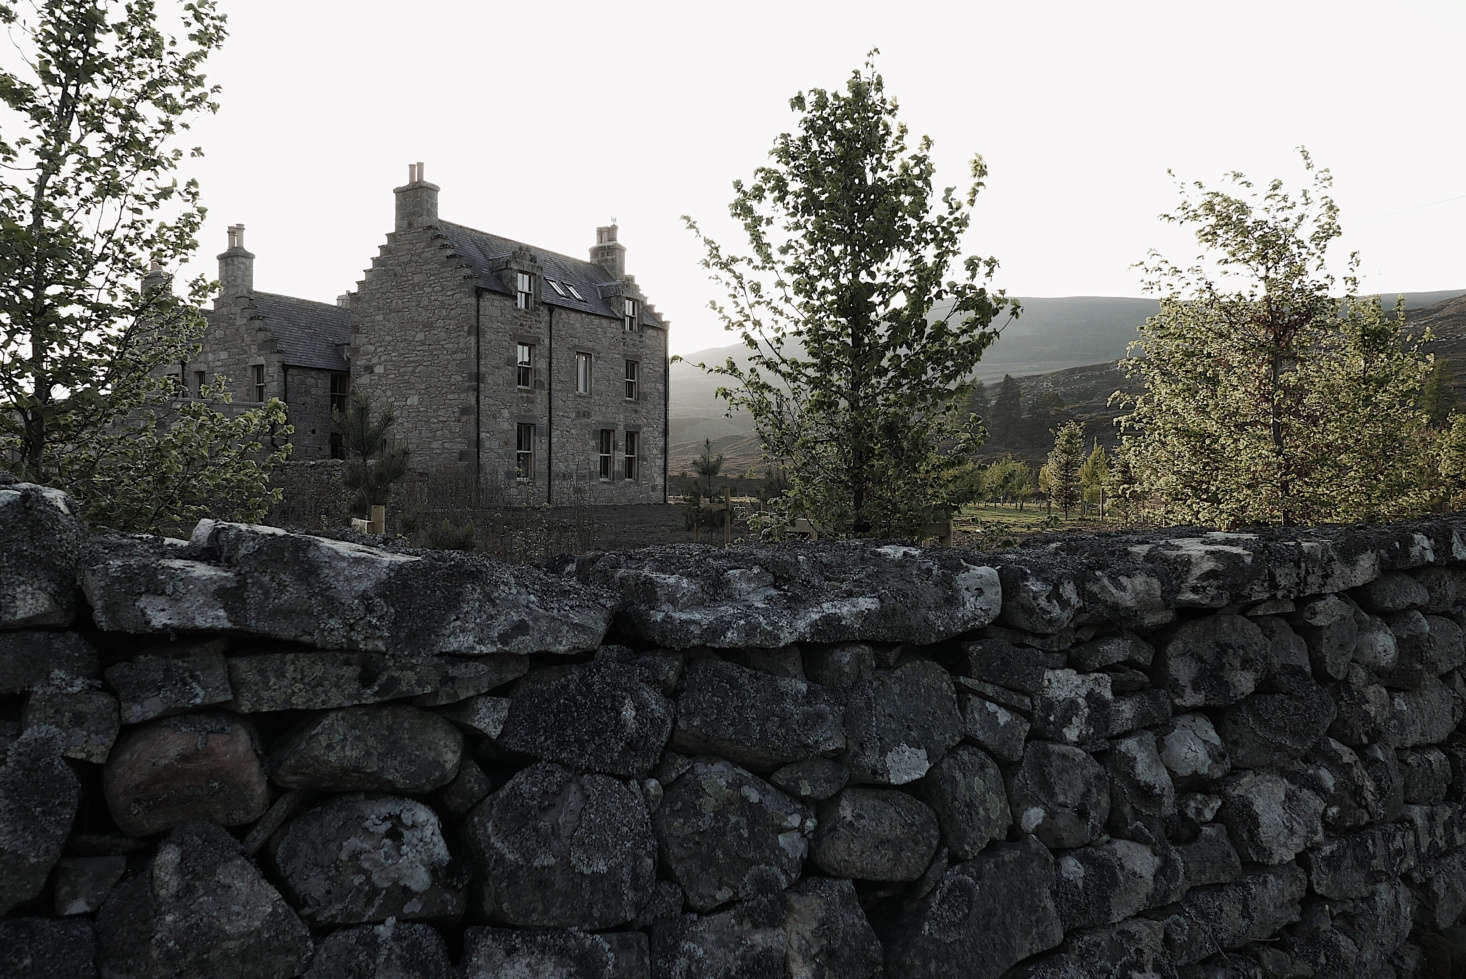 Gairnshiel Lodge was built in 1746 where the River Gairn and River Dee meet. Ballater in the Cairngorms National Park is the nearest village.